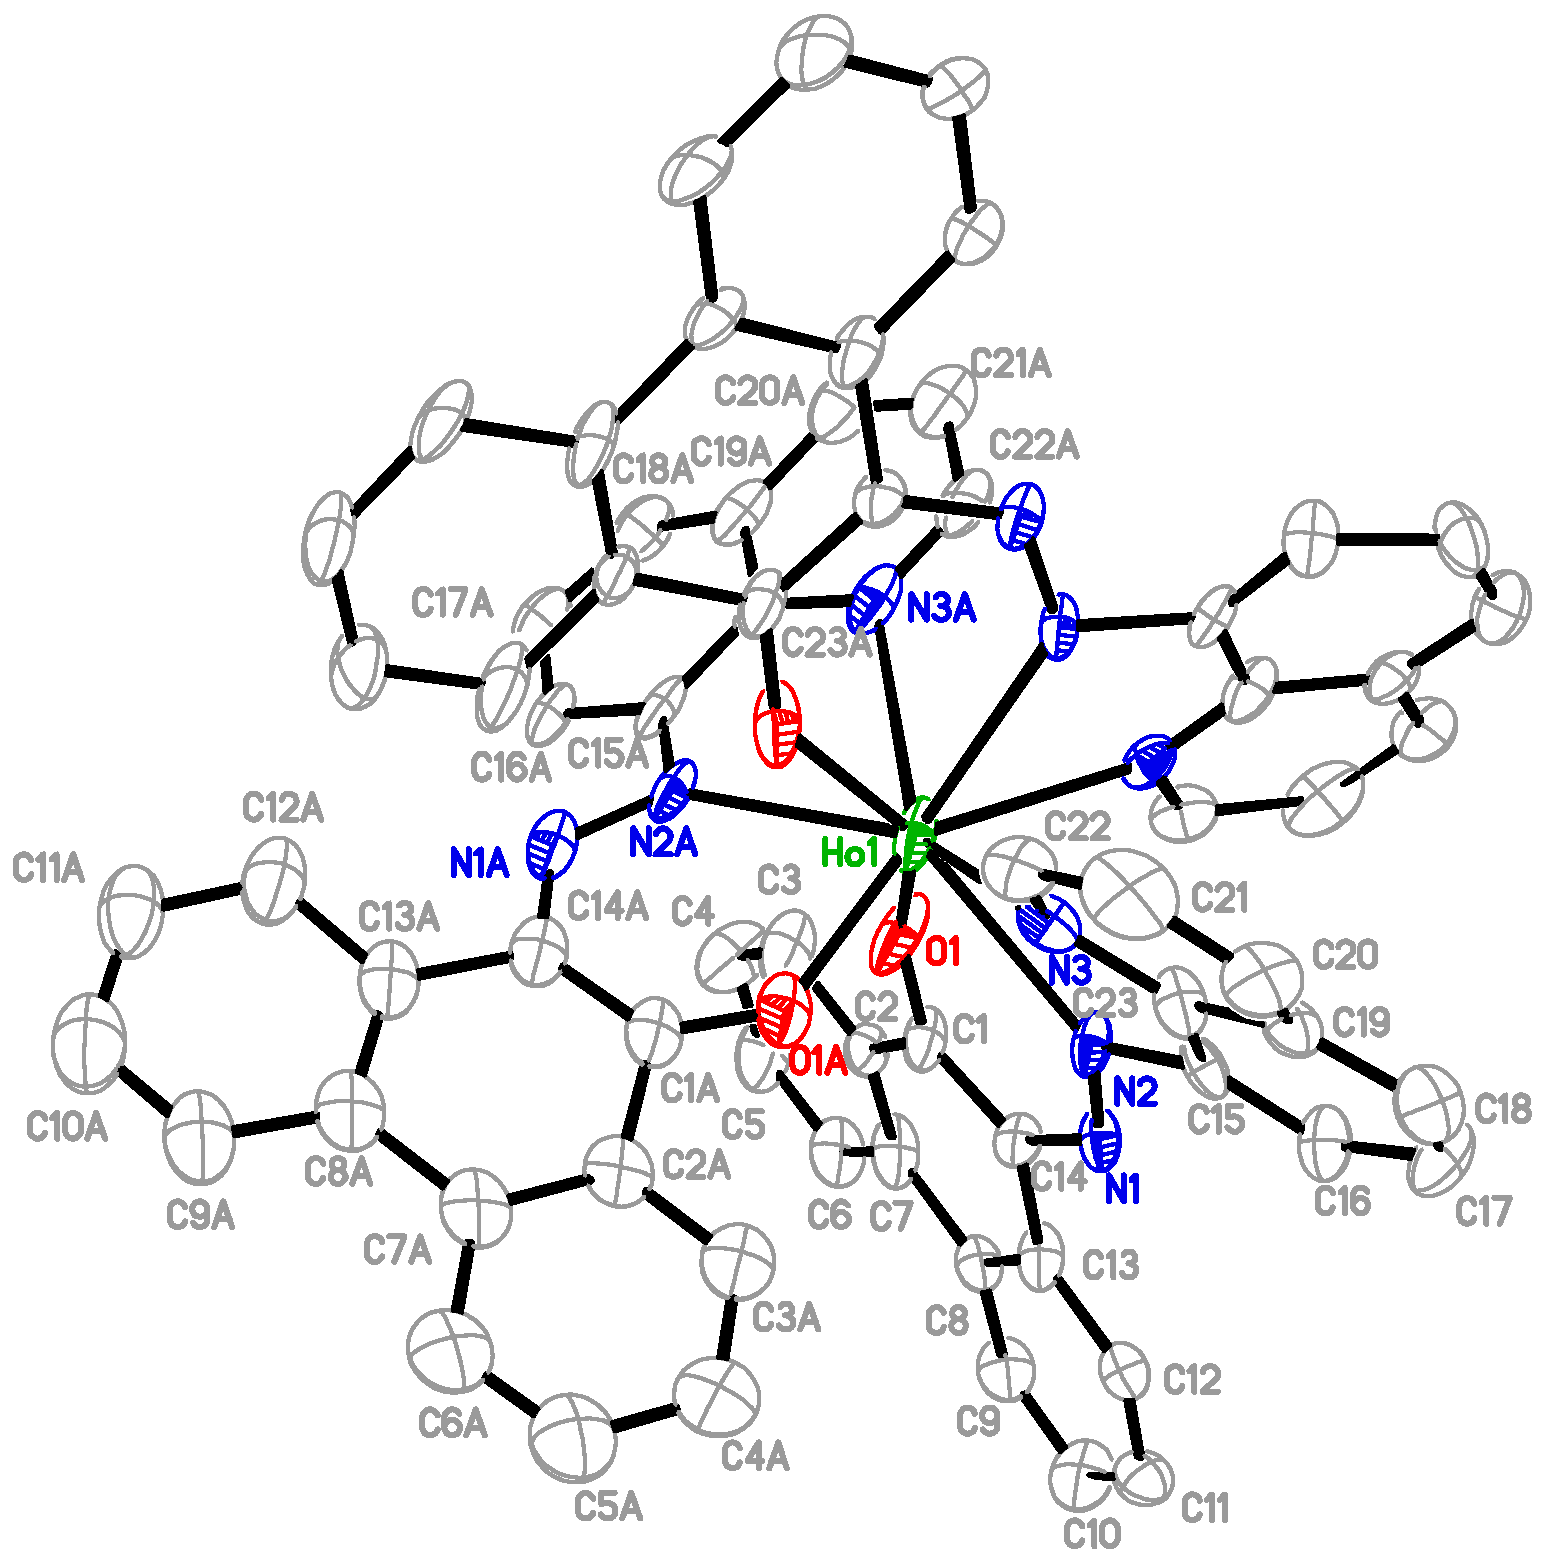 in anics free full text homoleptic lanthanide plexes The Structure and of the Atom and What the Atom Is Made Of no